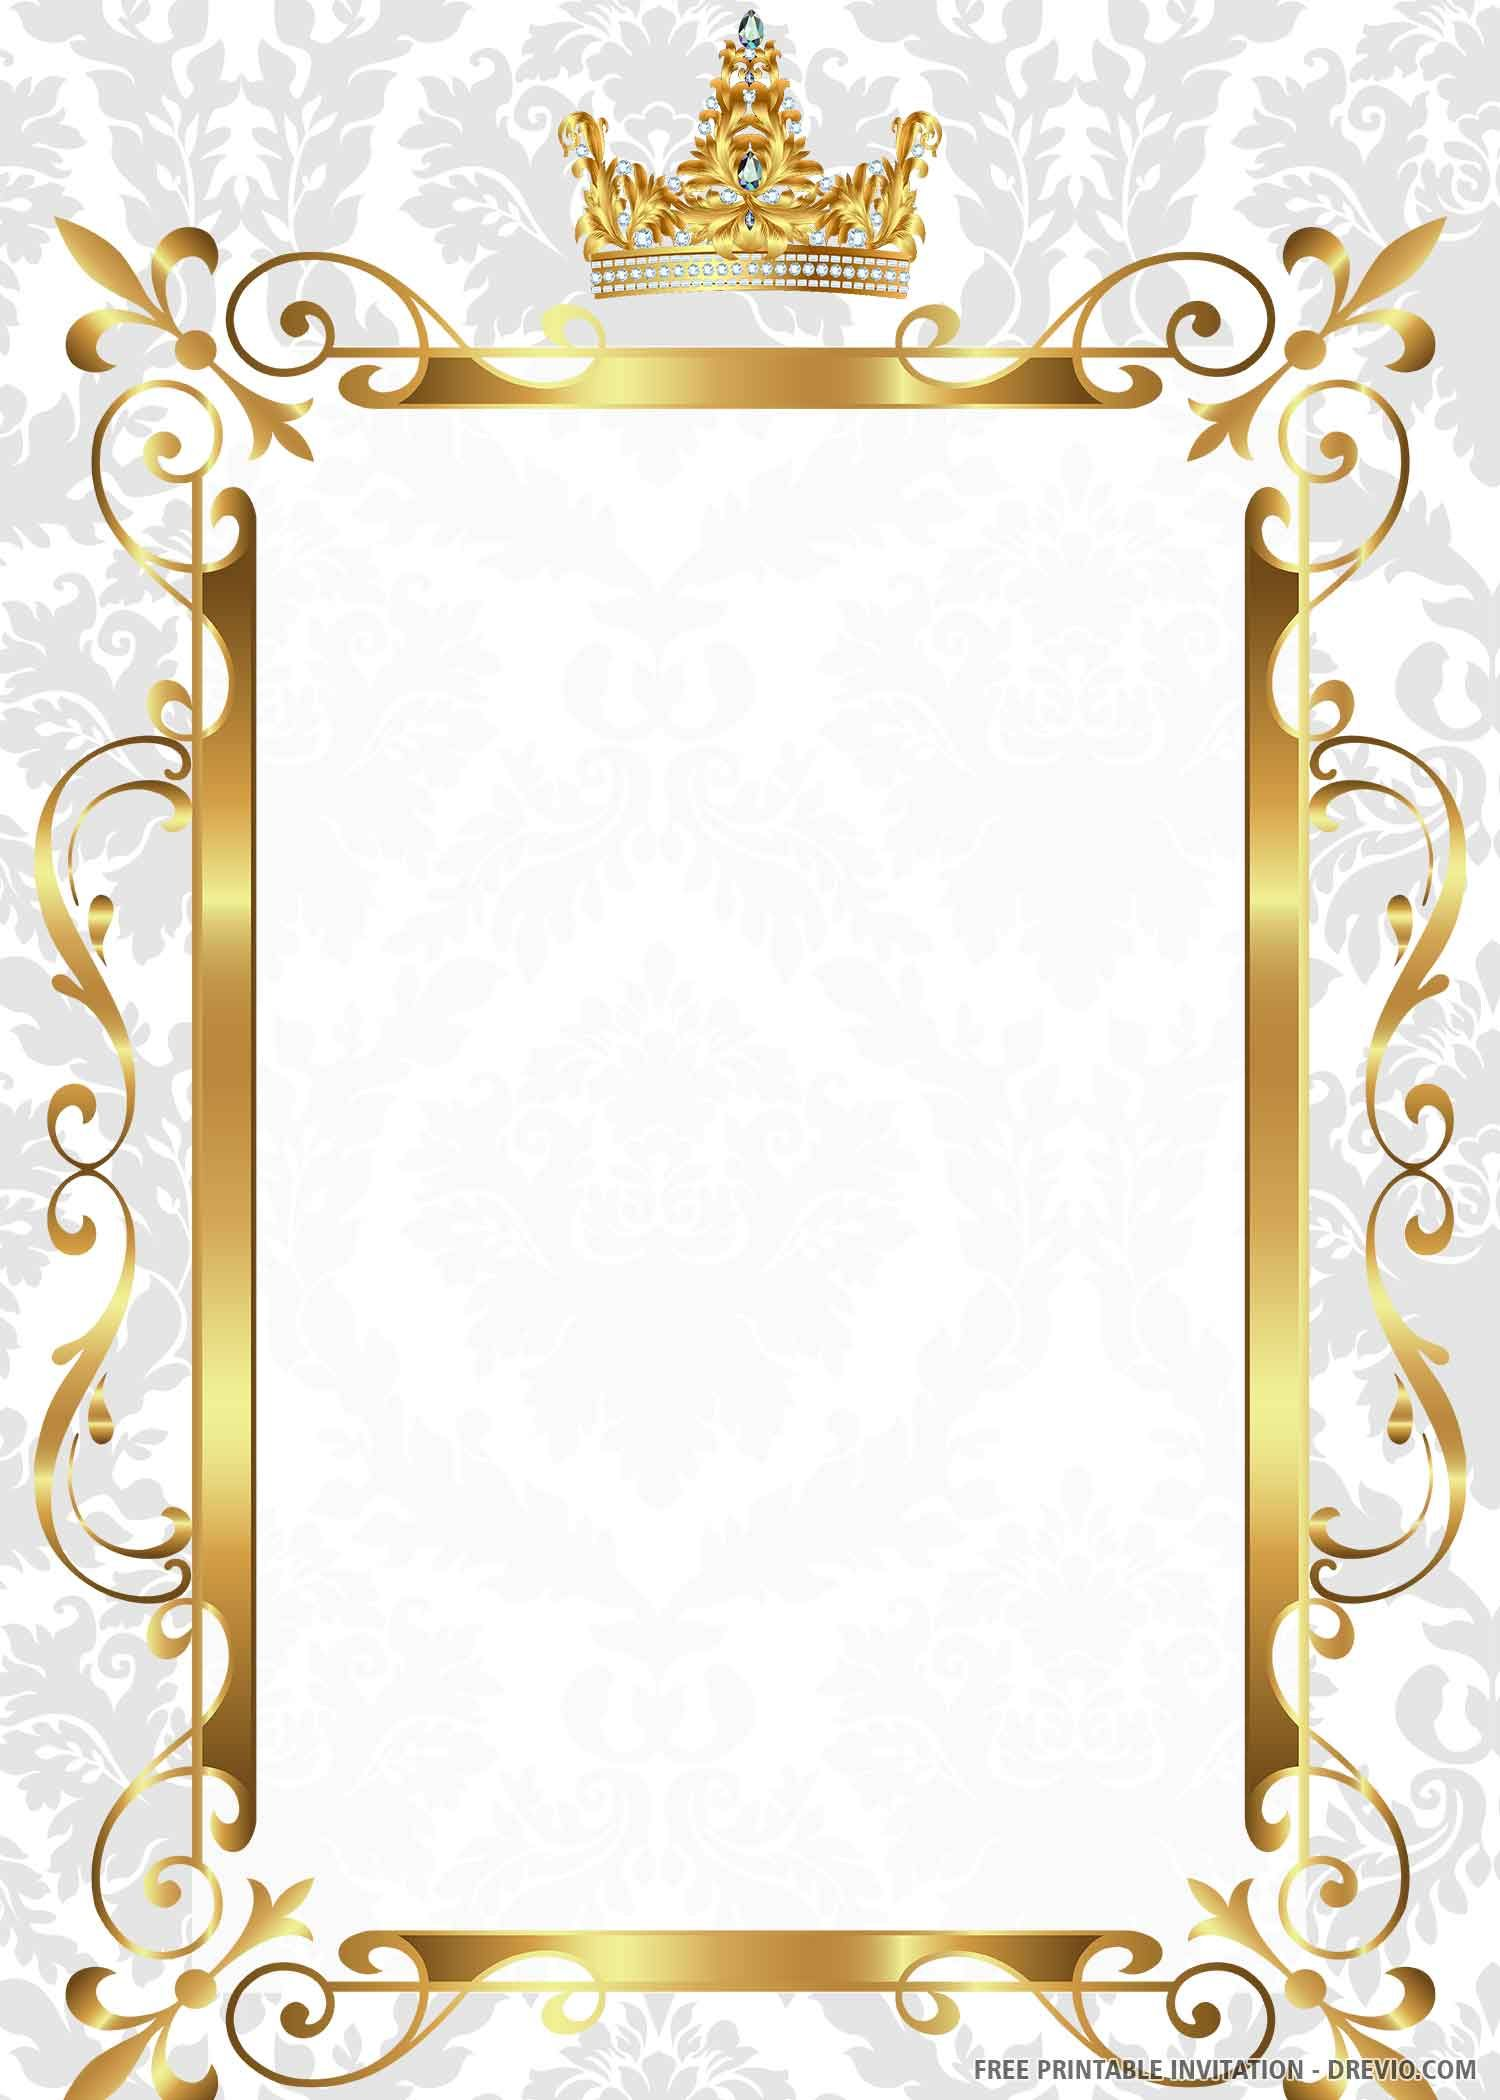 FREE PRINTABLE) – Gold Royal Wedding Invitation Templates